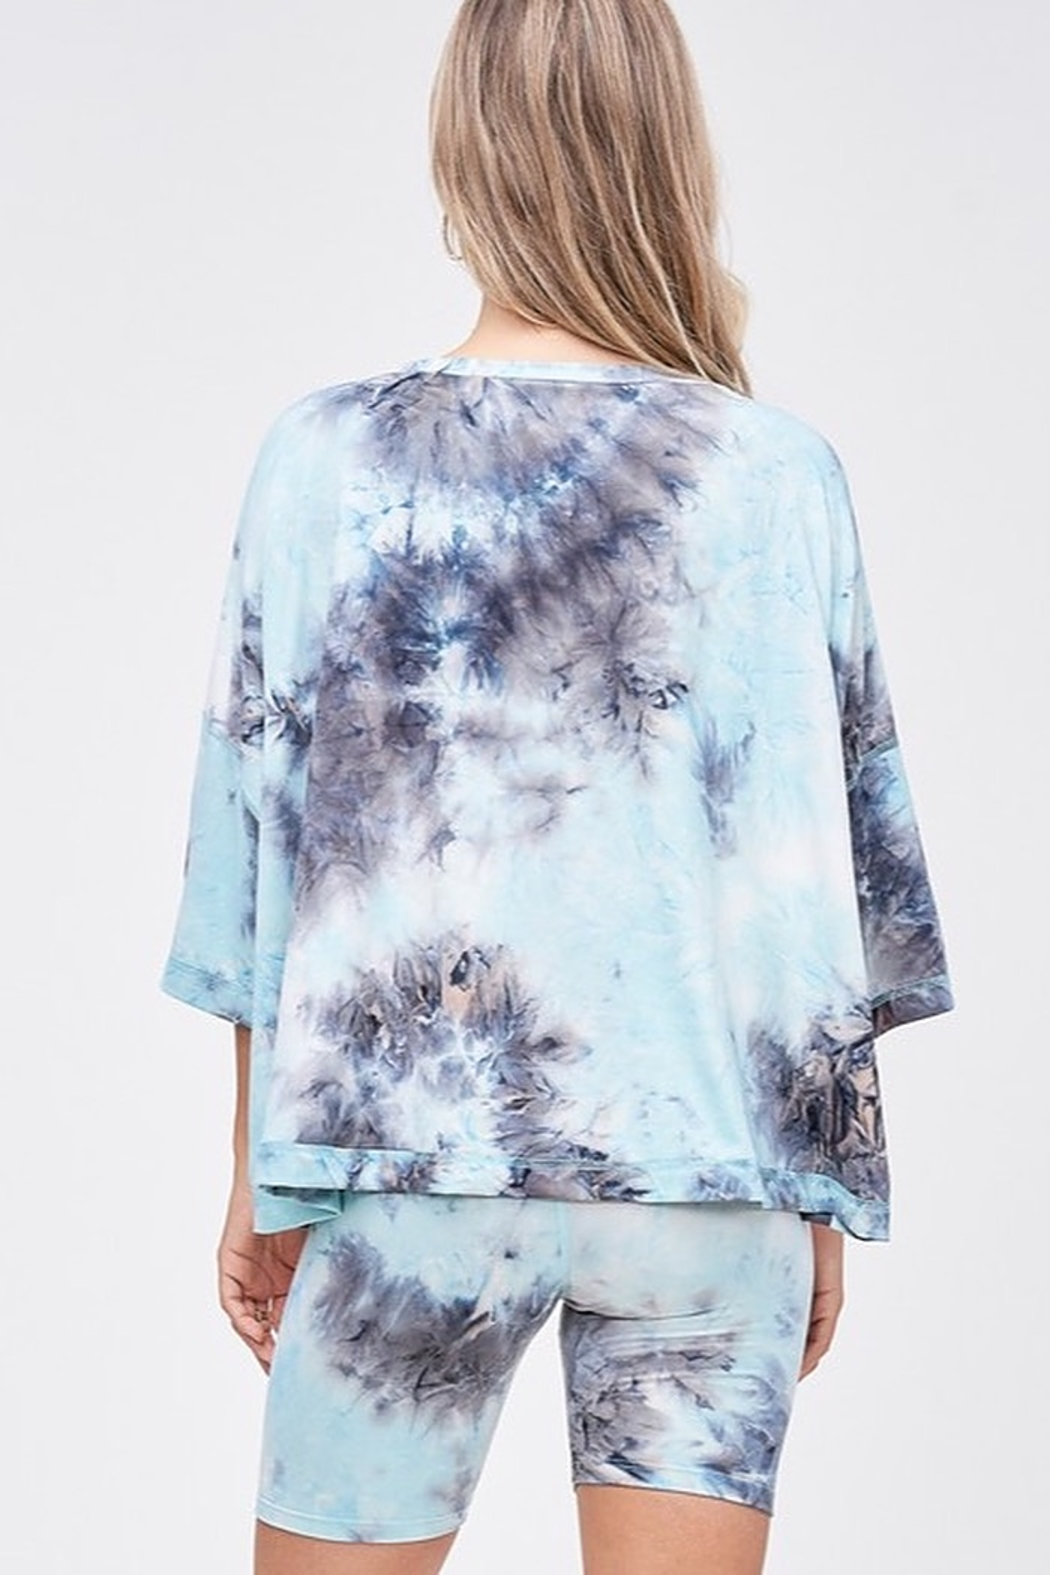 CRIV Sky High Tie Dye Top - Side Cropped Image